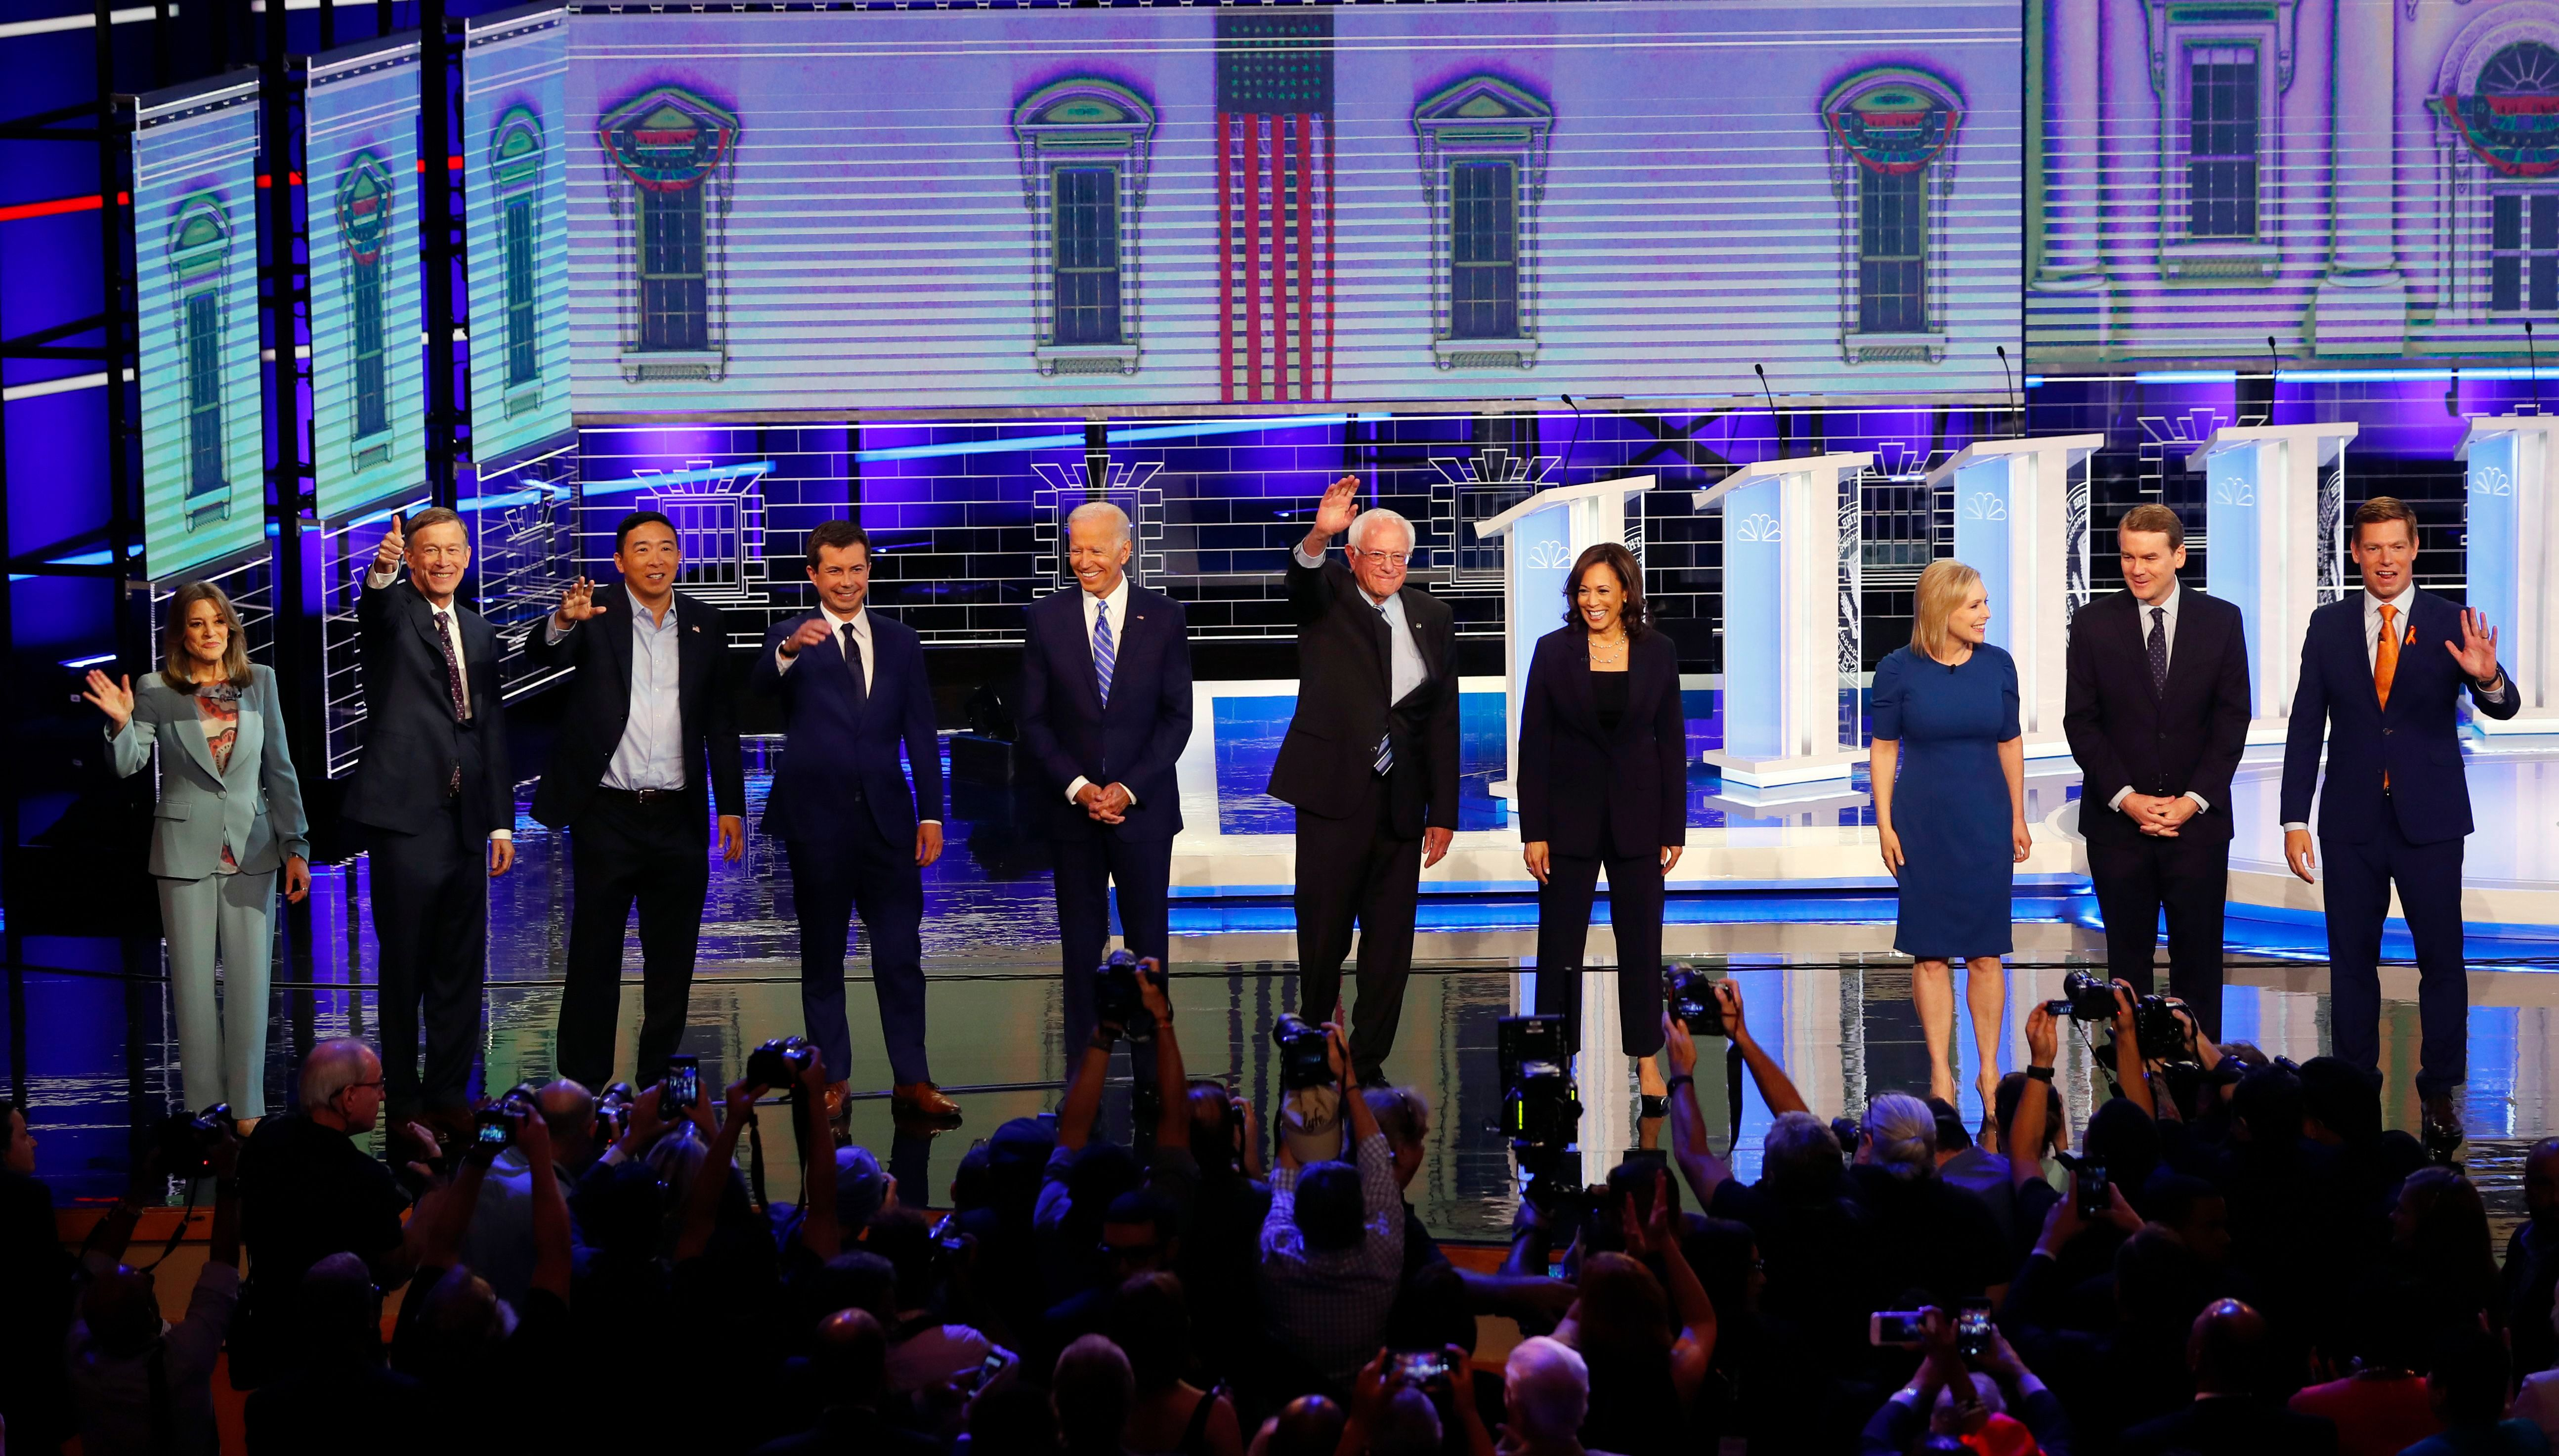 7 Memorable Dunks from the Second Night of the Democratic Debates